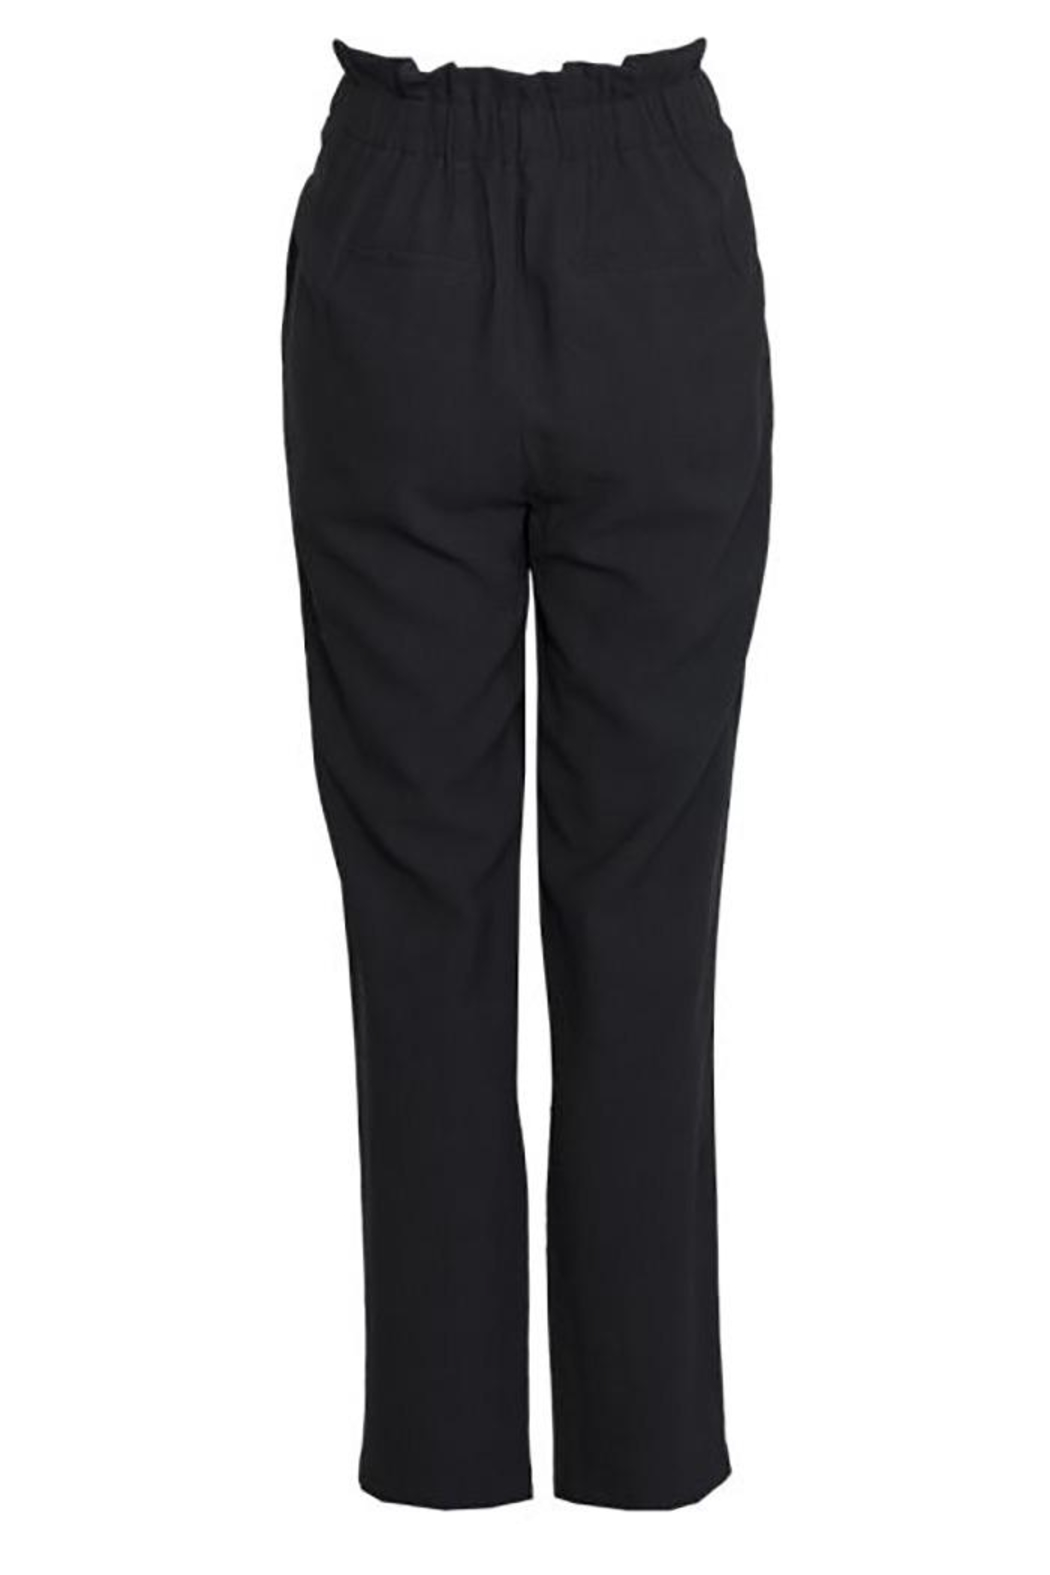 Sparks Taila Pants - Front Full Image